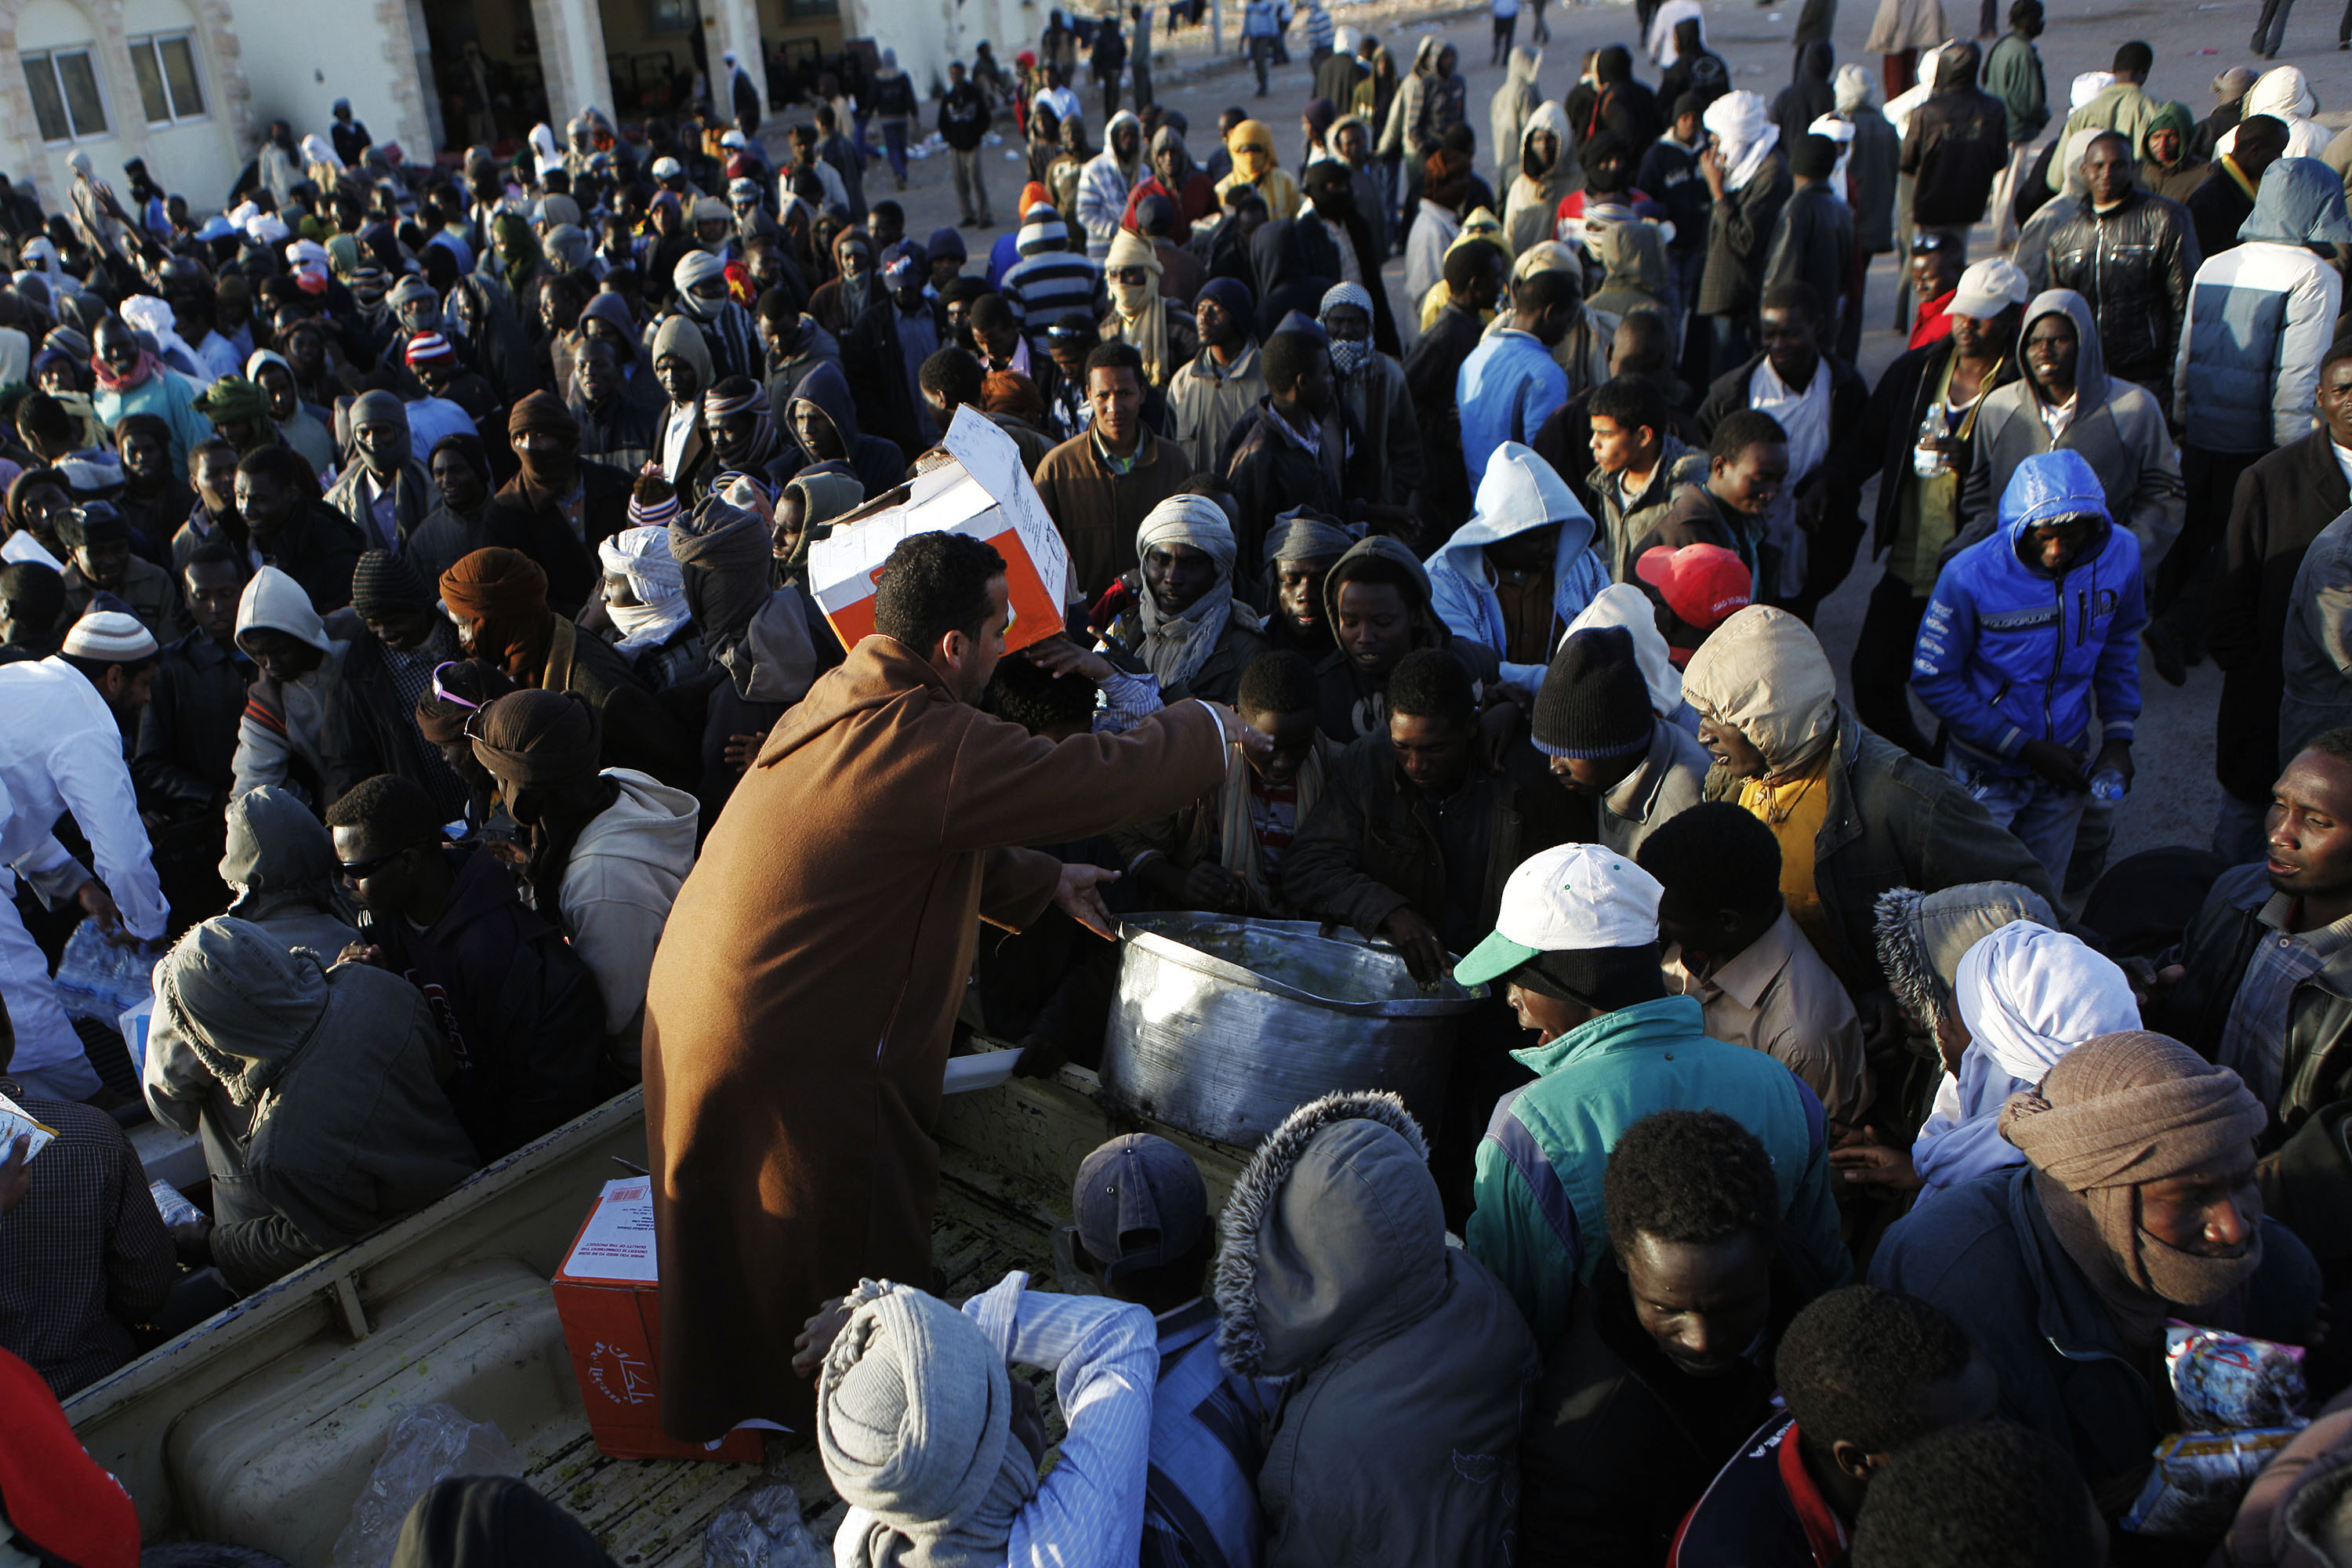 Refugees from sub-Saharan Africa receive food being handed out at the Libya-Egypt border to African workers who fled fighting in eastern Libya, March 16, 2011. REUTERS/Finbarr O'Reilly (EGYPT - Tags: CONFLICT CIVIL UNREST POLITICS) - RTR2JZDX